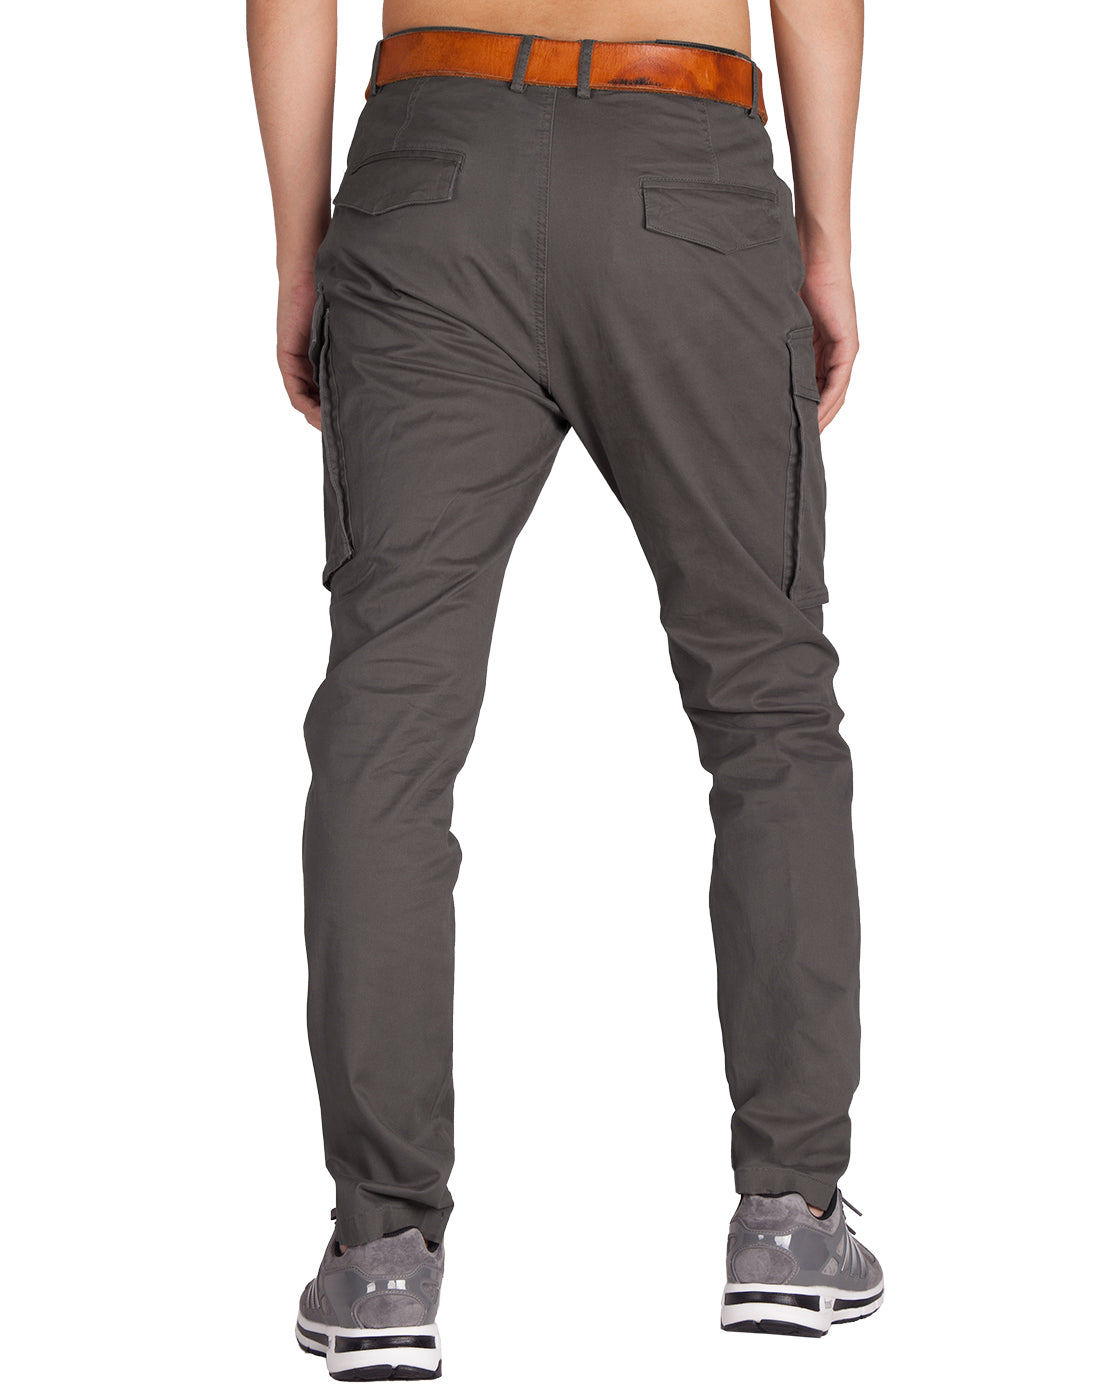 Man Cargo Pants Dark Grey - italymorn